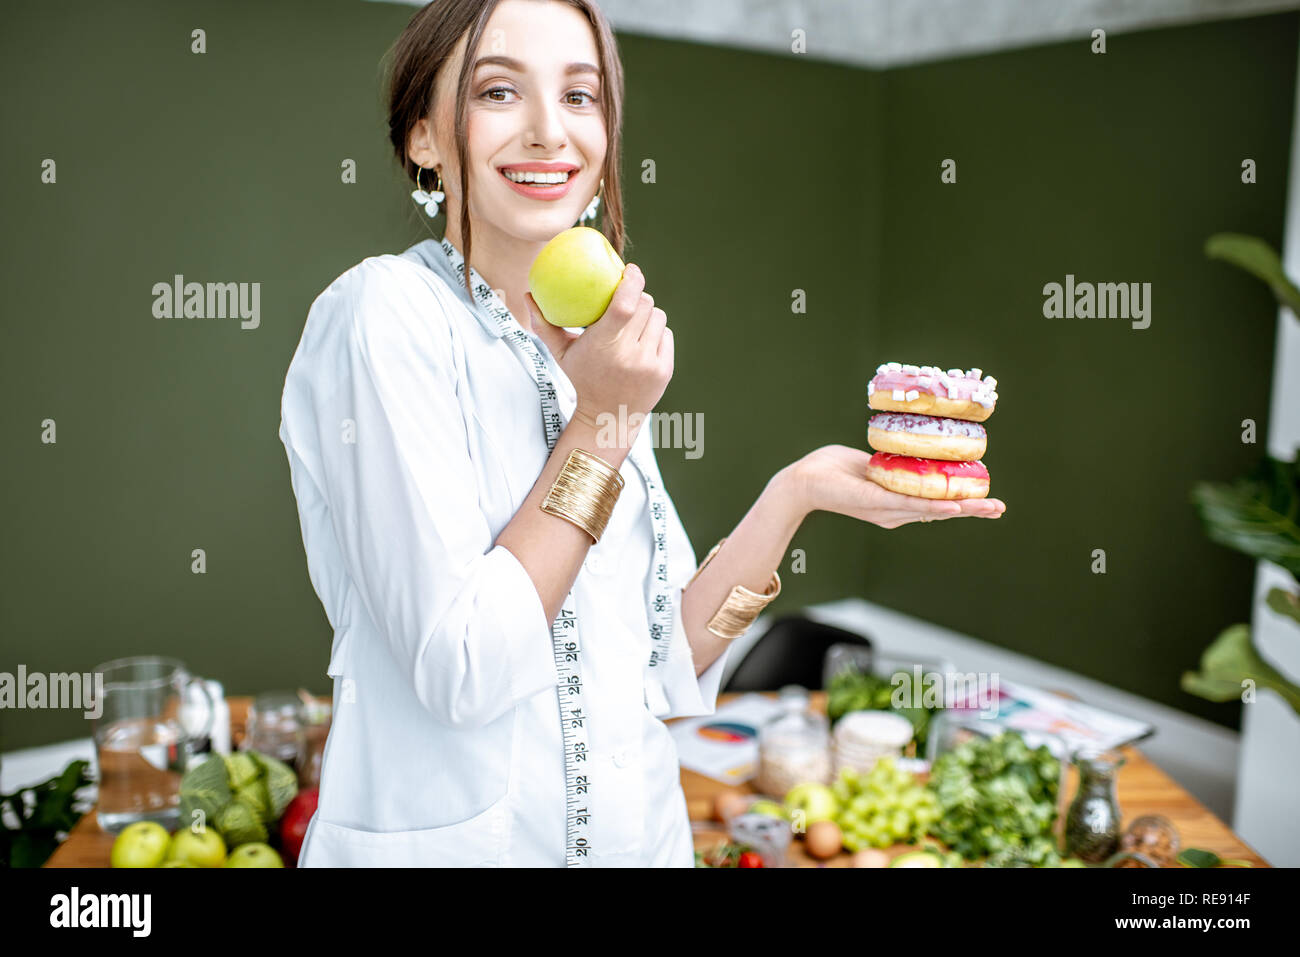 Young woman nutritionist looking on the apple choosing between healthy food and sweet dessert - Stock Photo